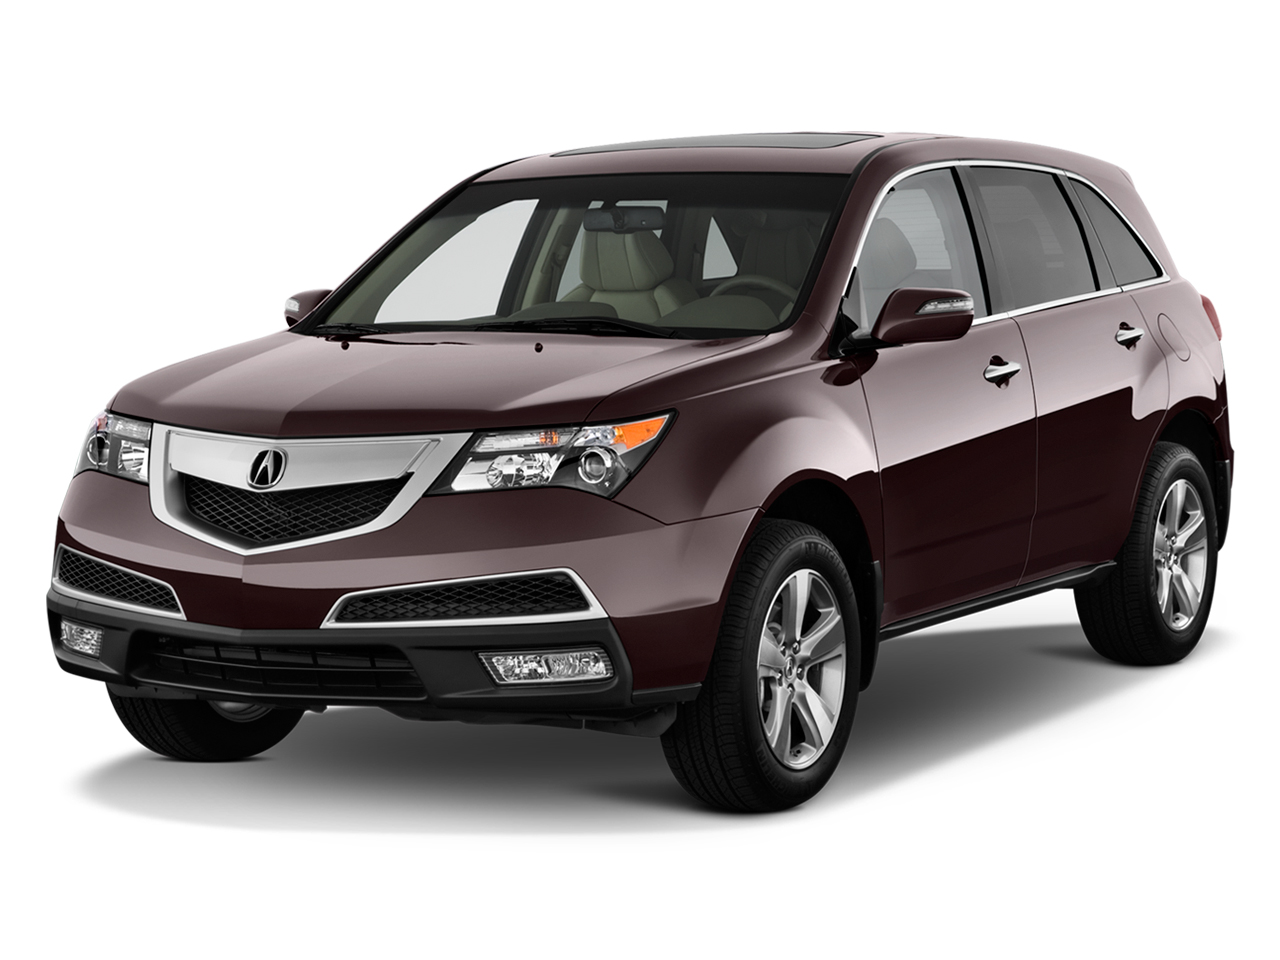 2012 acura mdx review ratings specs prices and photos the car connection. Black Bedroom Furniture Sets. Home Design Ideas